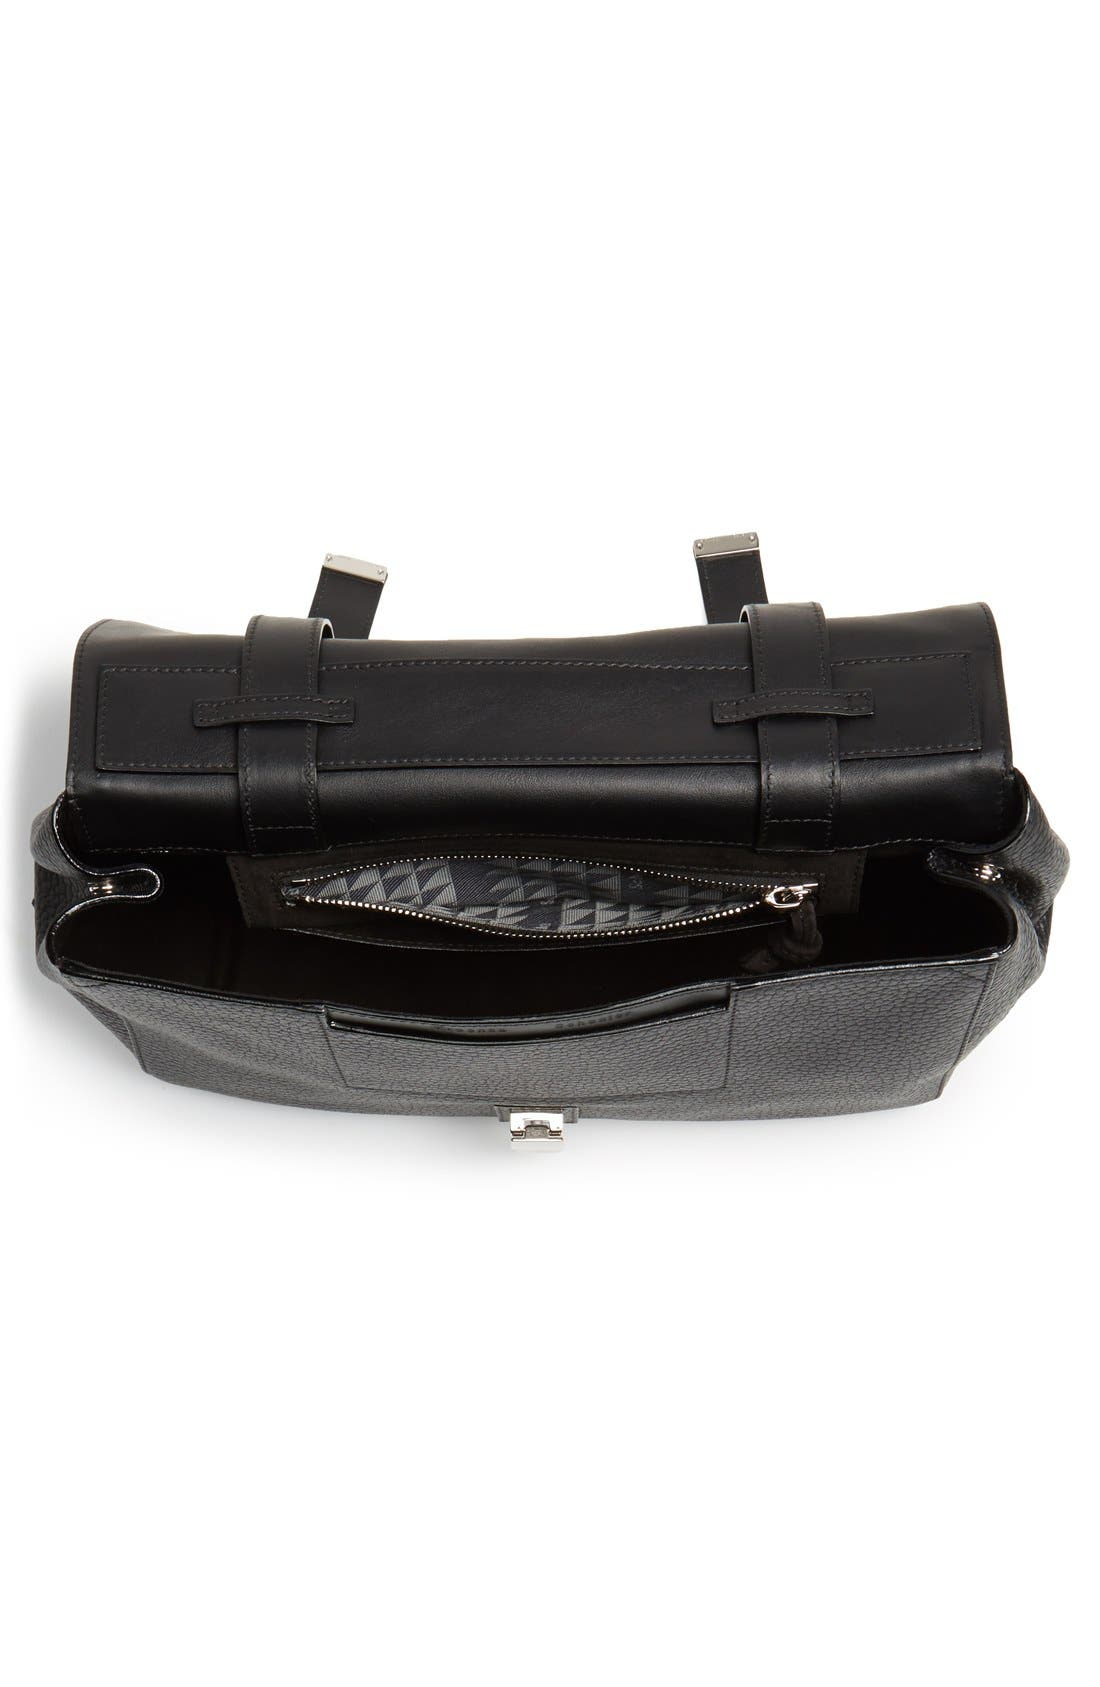 Alternate Image 3  - Proenza Schouler 'Courier' Pebbled Leather Crossbody Bag